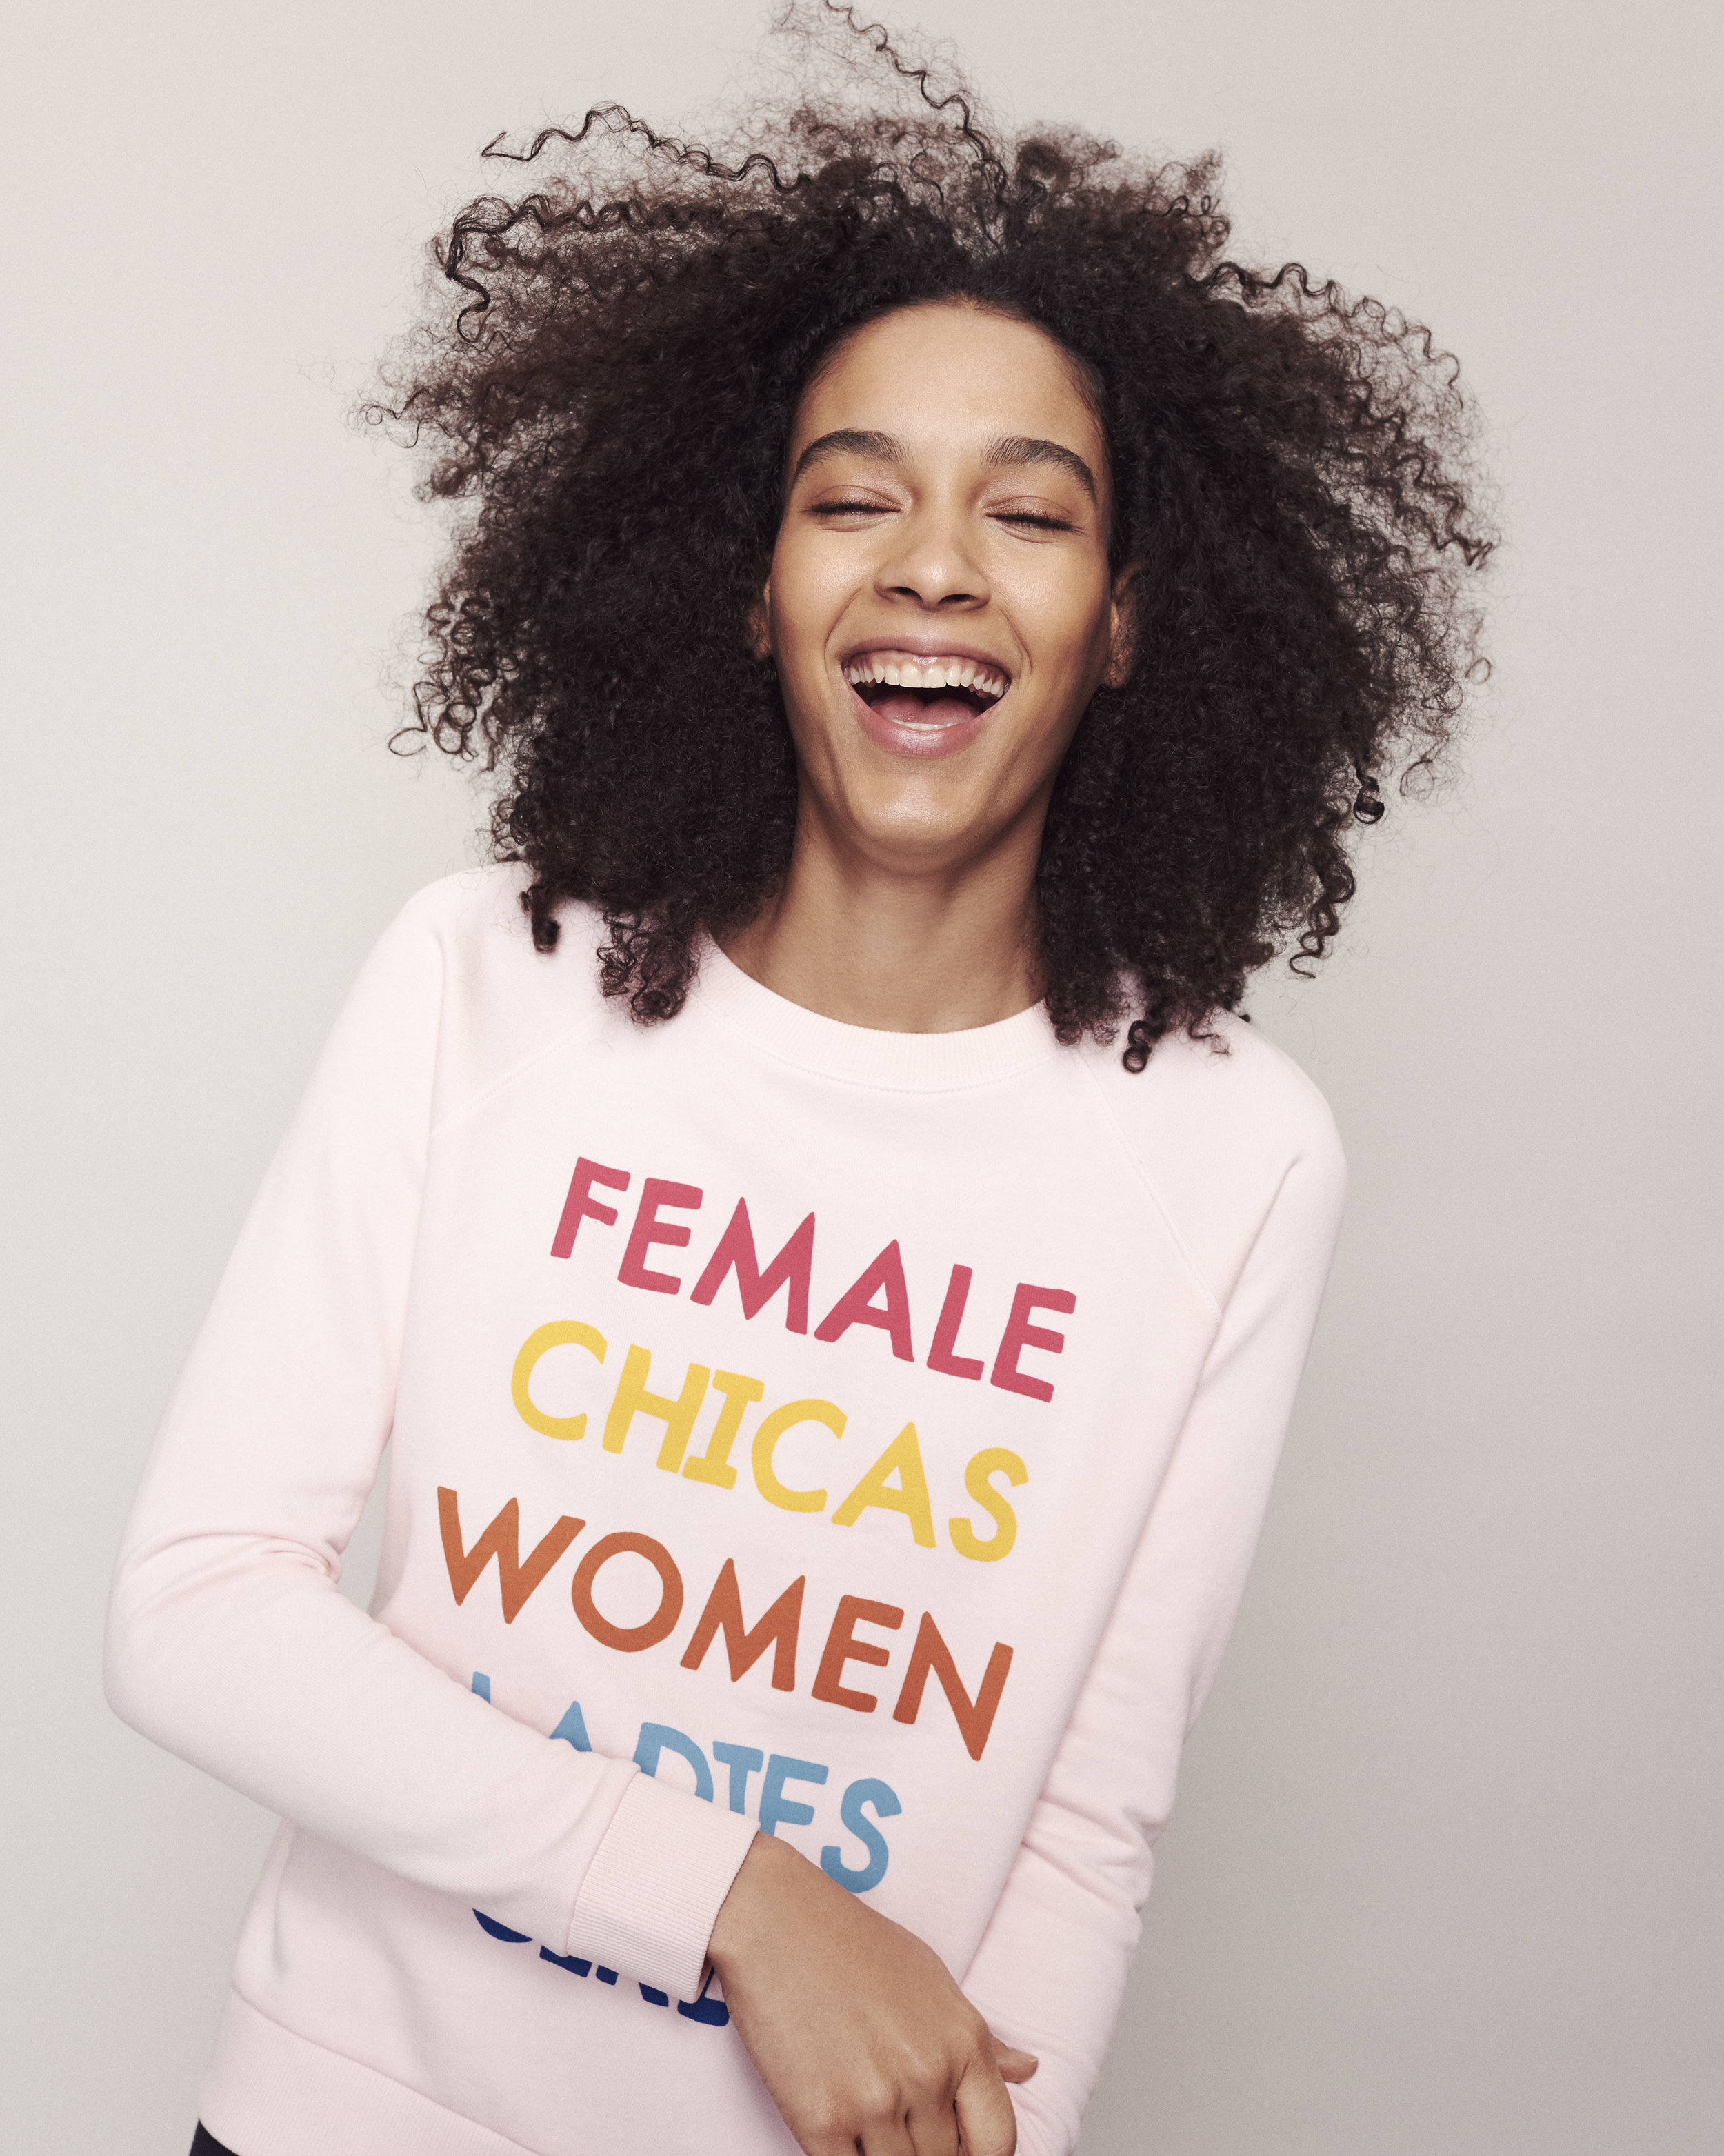 Women's History Month - Calhoun & Co. x Lou & Grey Graphic Sweatshirt Collaboration